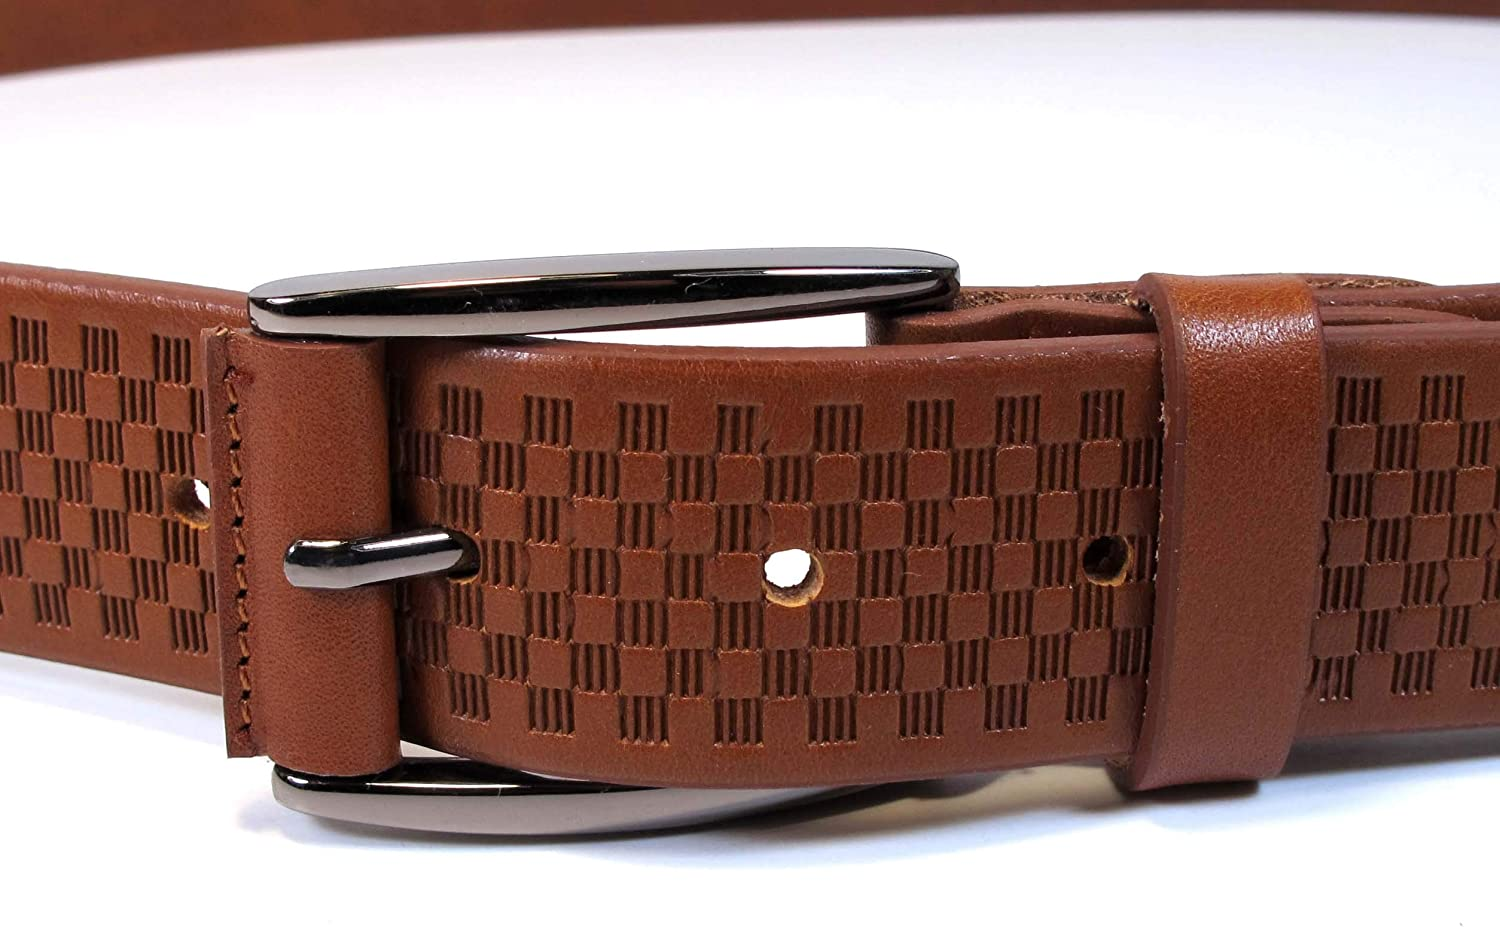 42 Mens Real Genuine Leather Belt Black Brown White 1.25 Wide S-XL Casual Jeans CU4 , Tan Brown Waist 40, Total 49